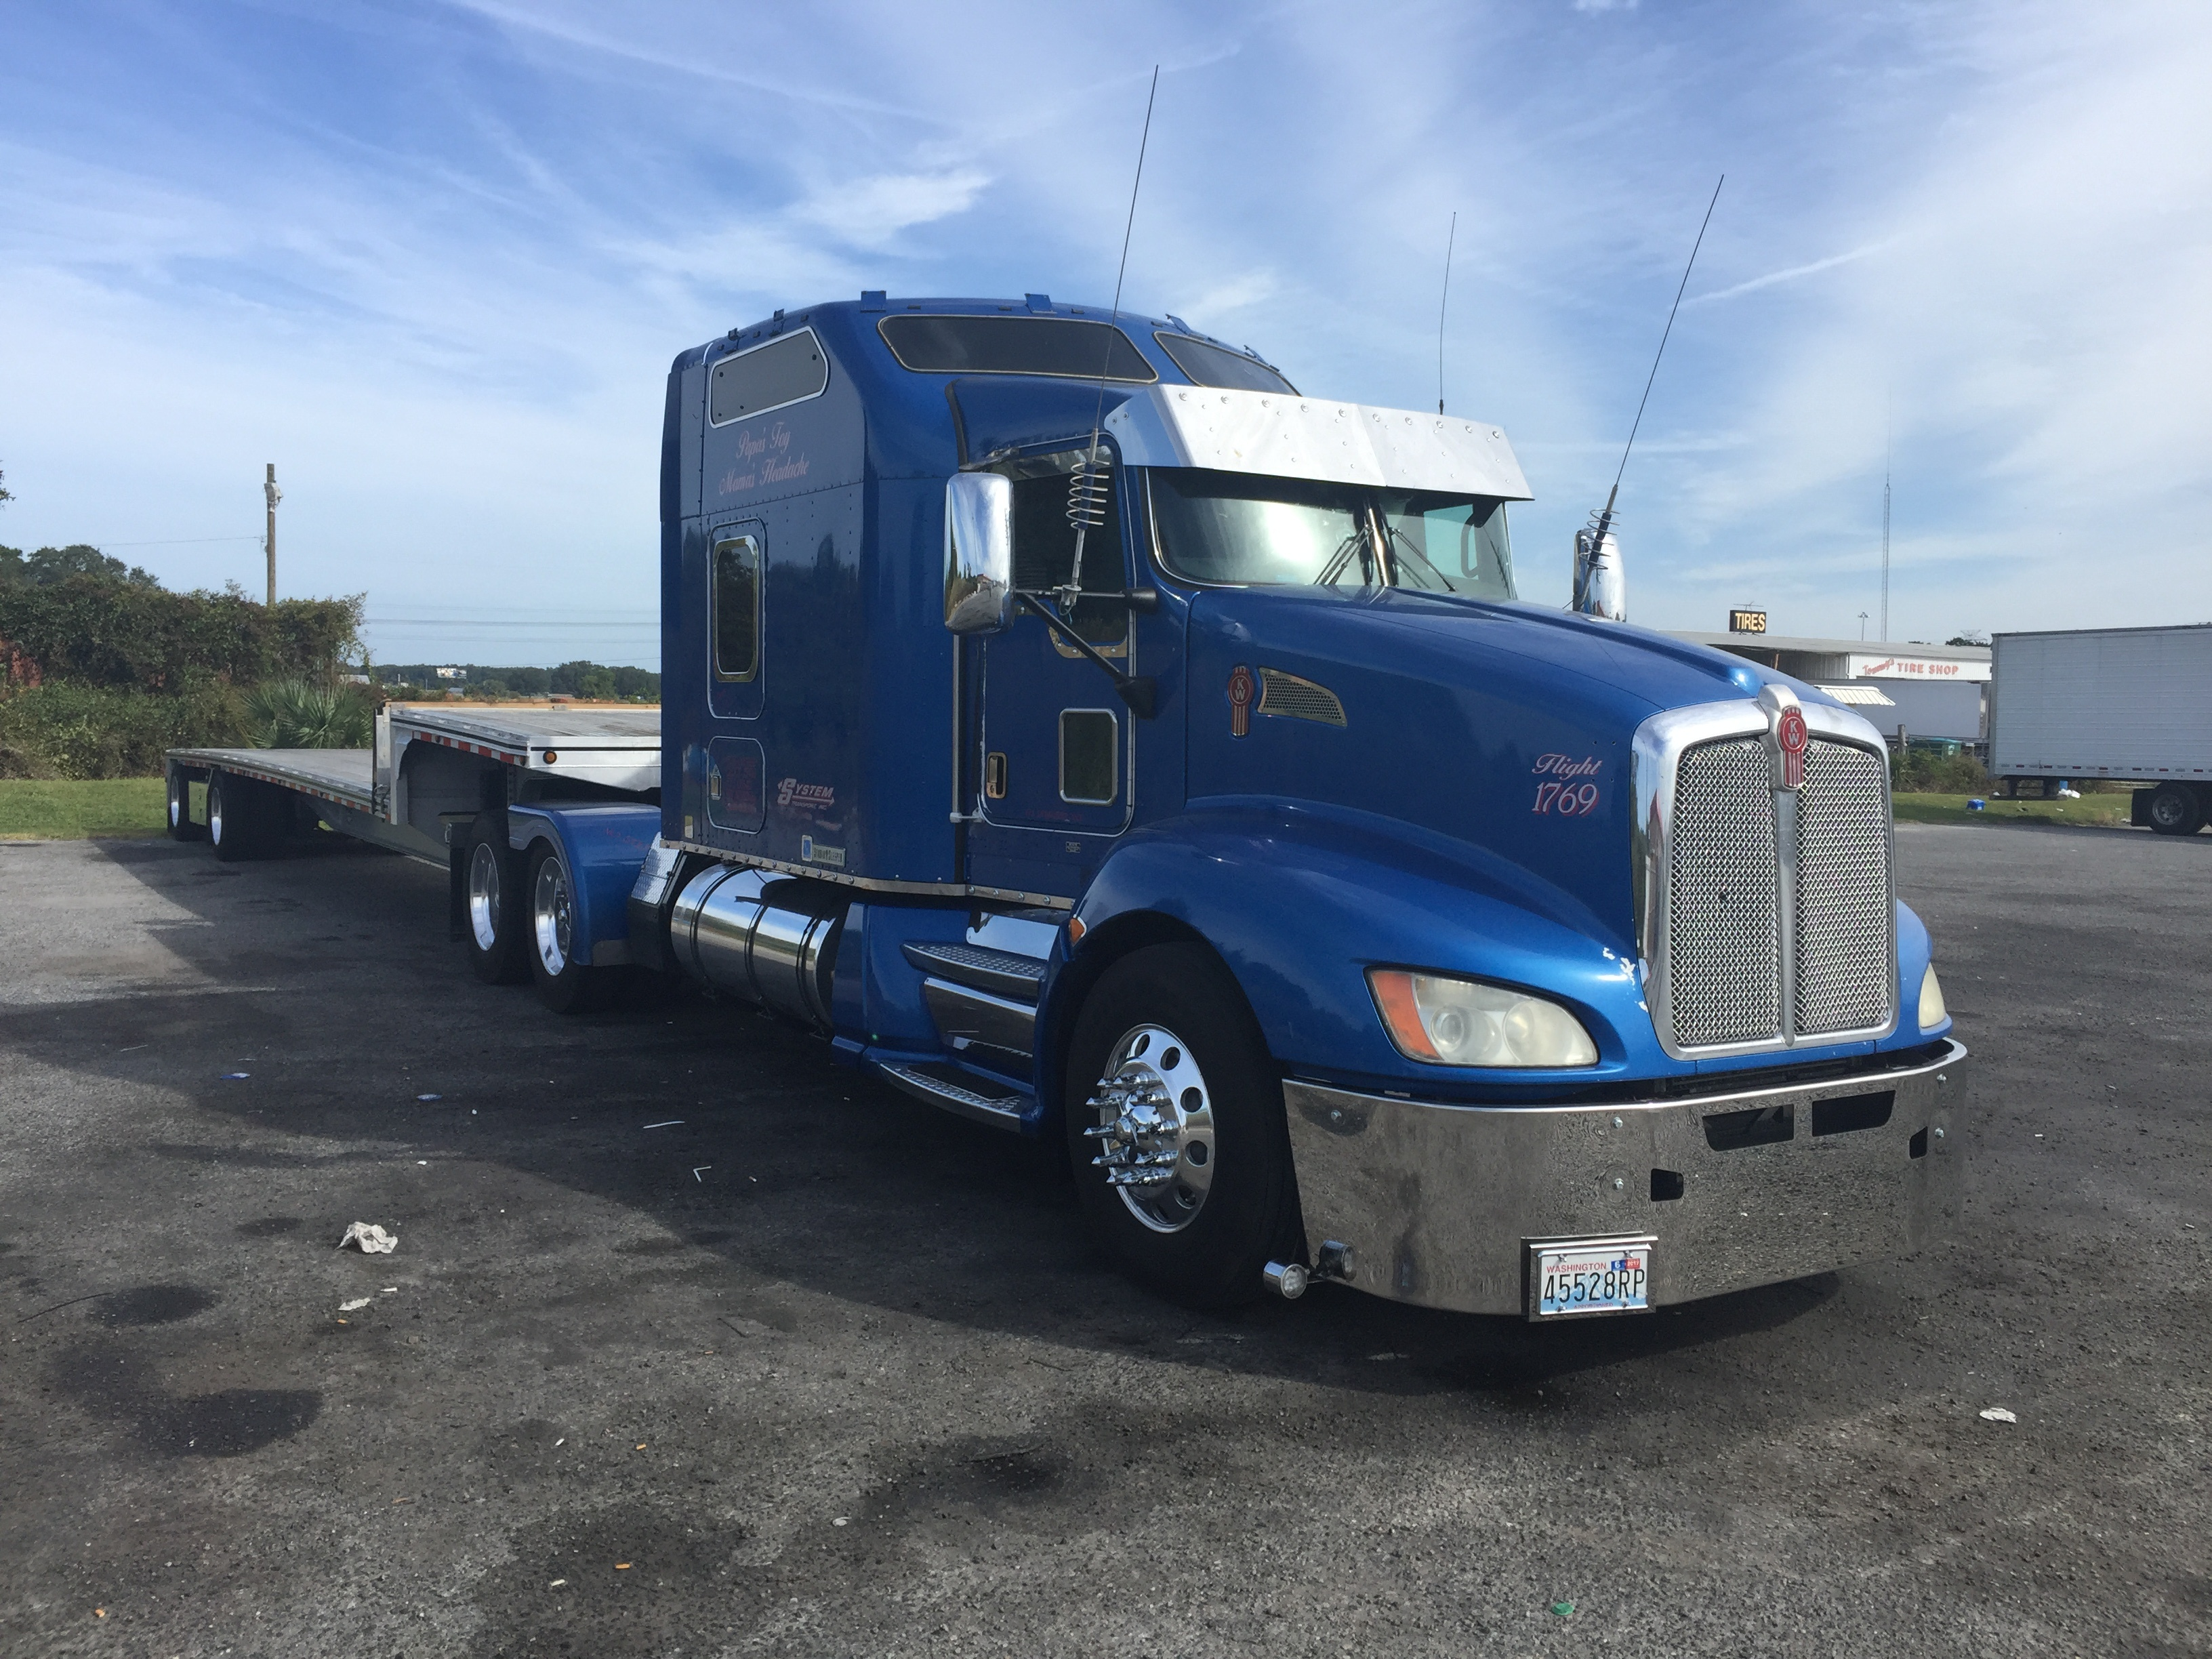 Clark's big rig, first picture.